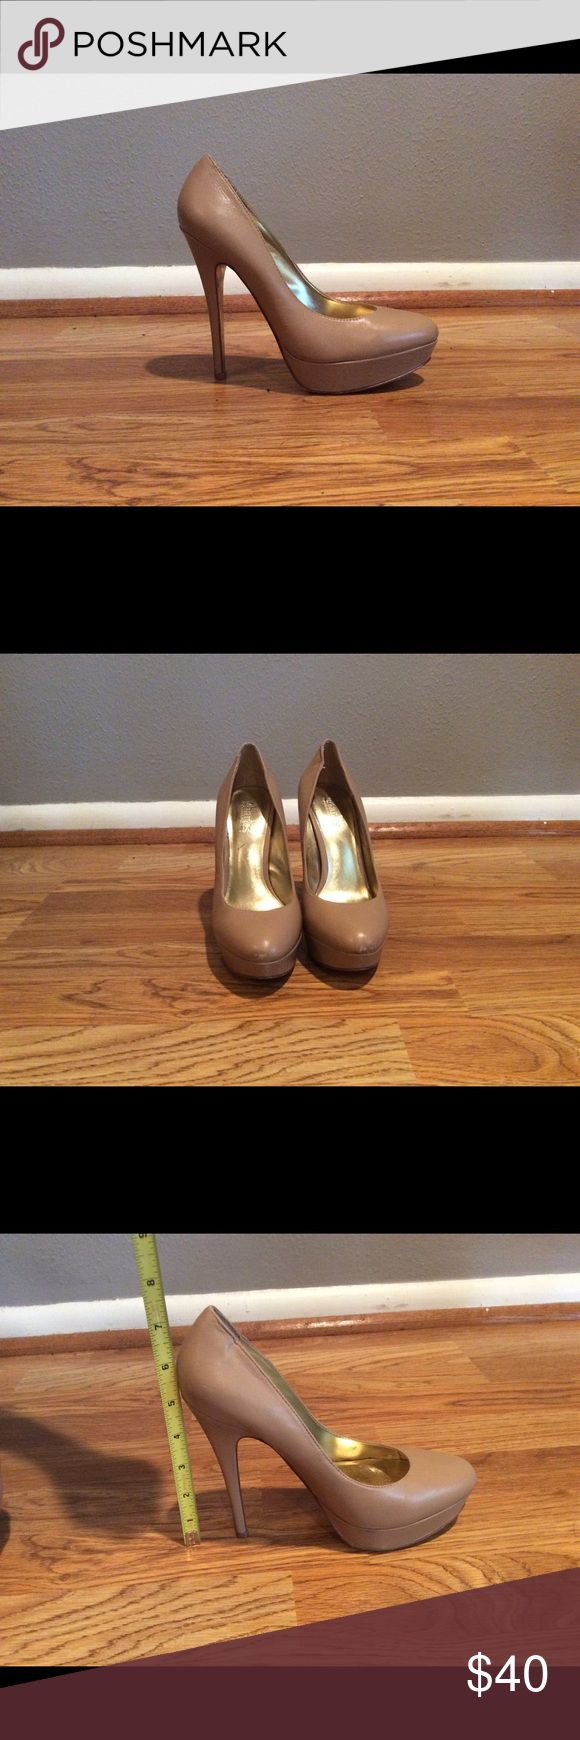 Charles David Nude platform heels size 7 Charles David Nude platform heels size 7. In good condition. There is a little wear on the toe. Easily fixed. These fit true to size. 4 inch heels. Charles David Shoes Heels